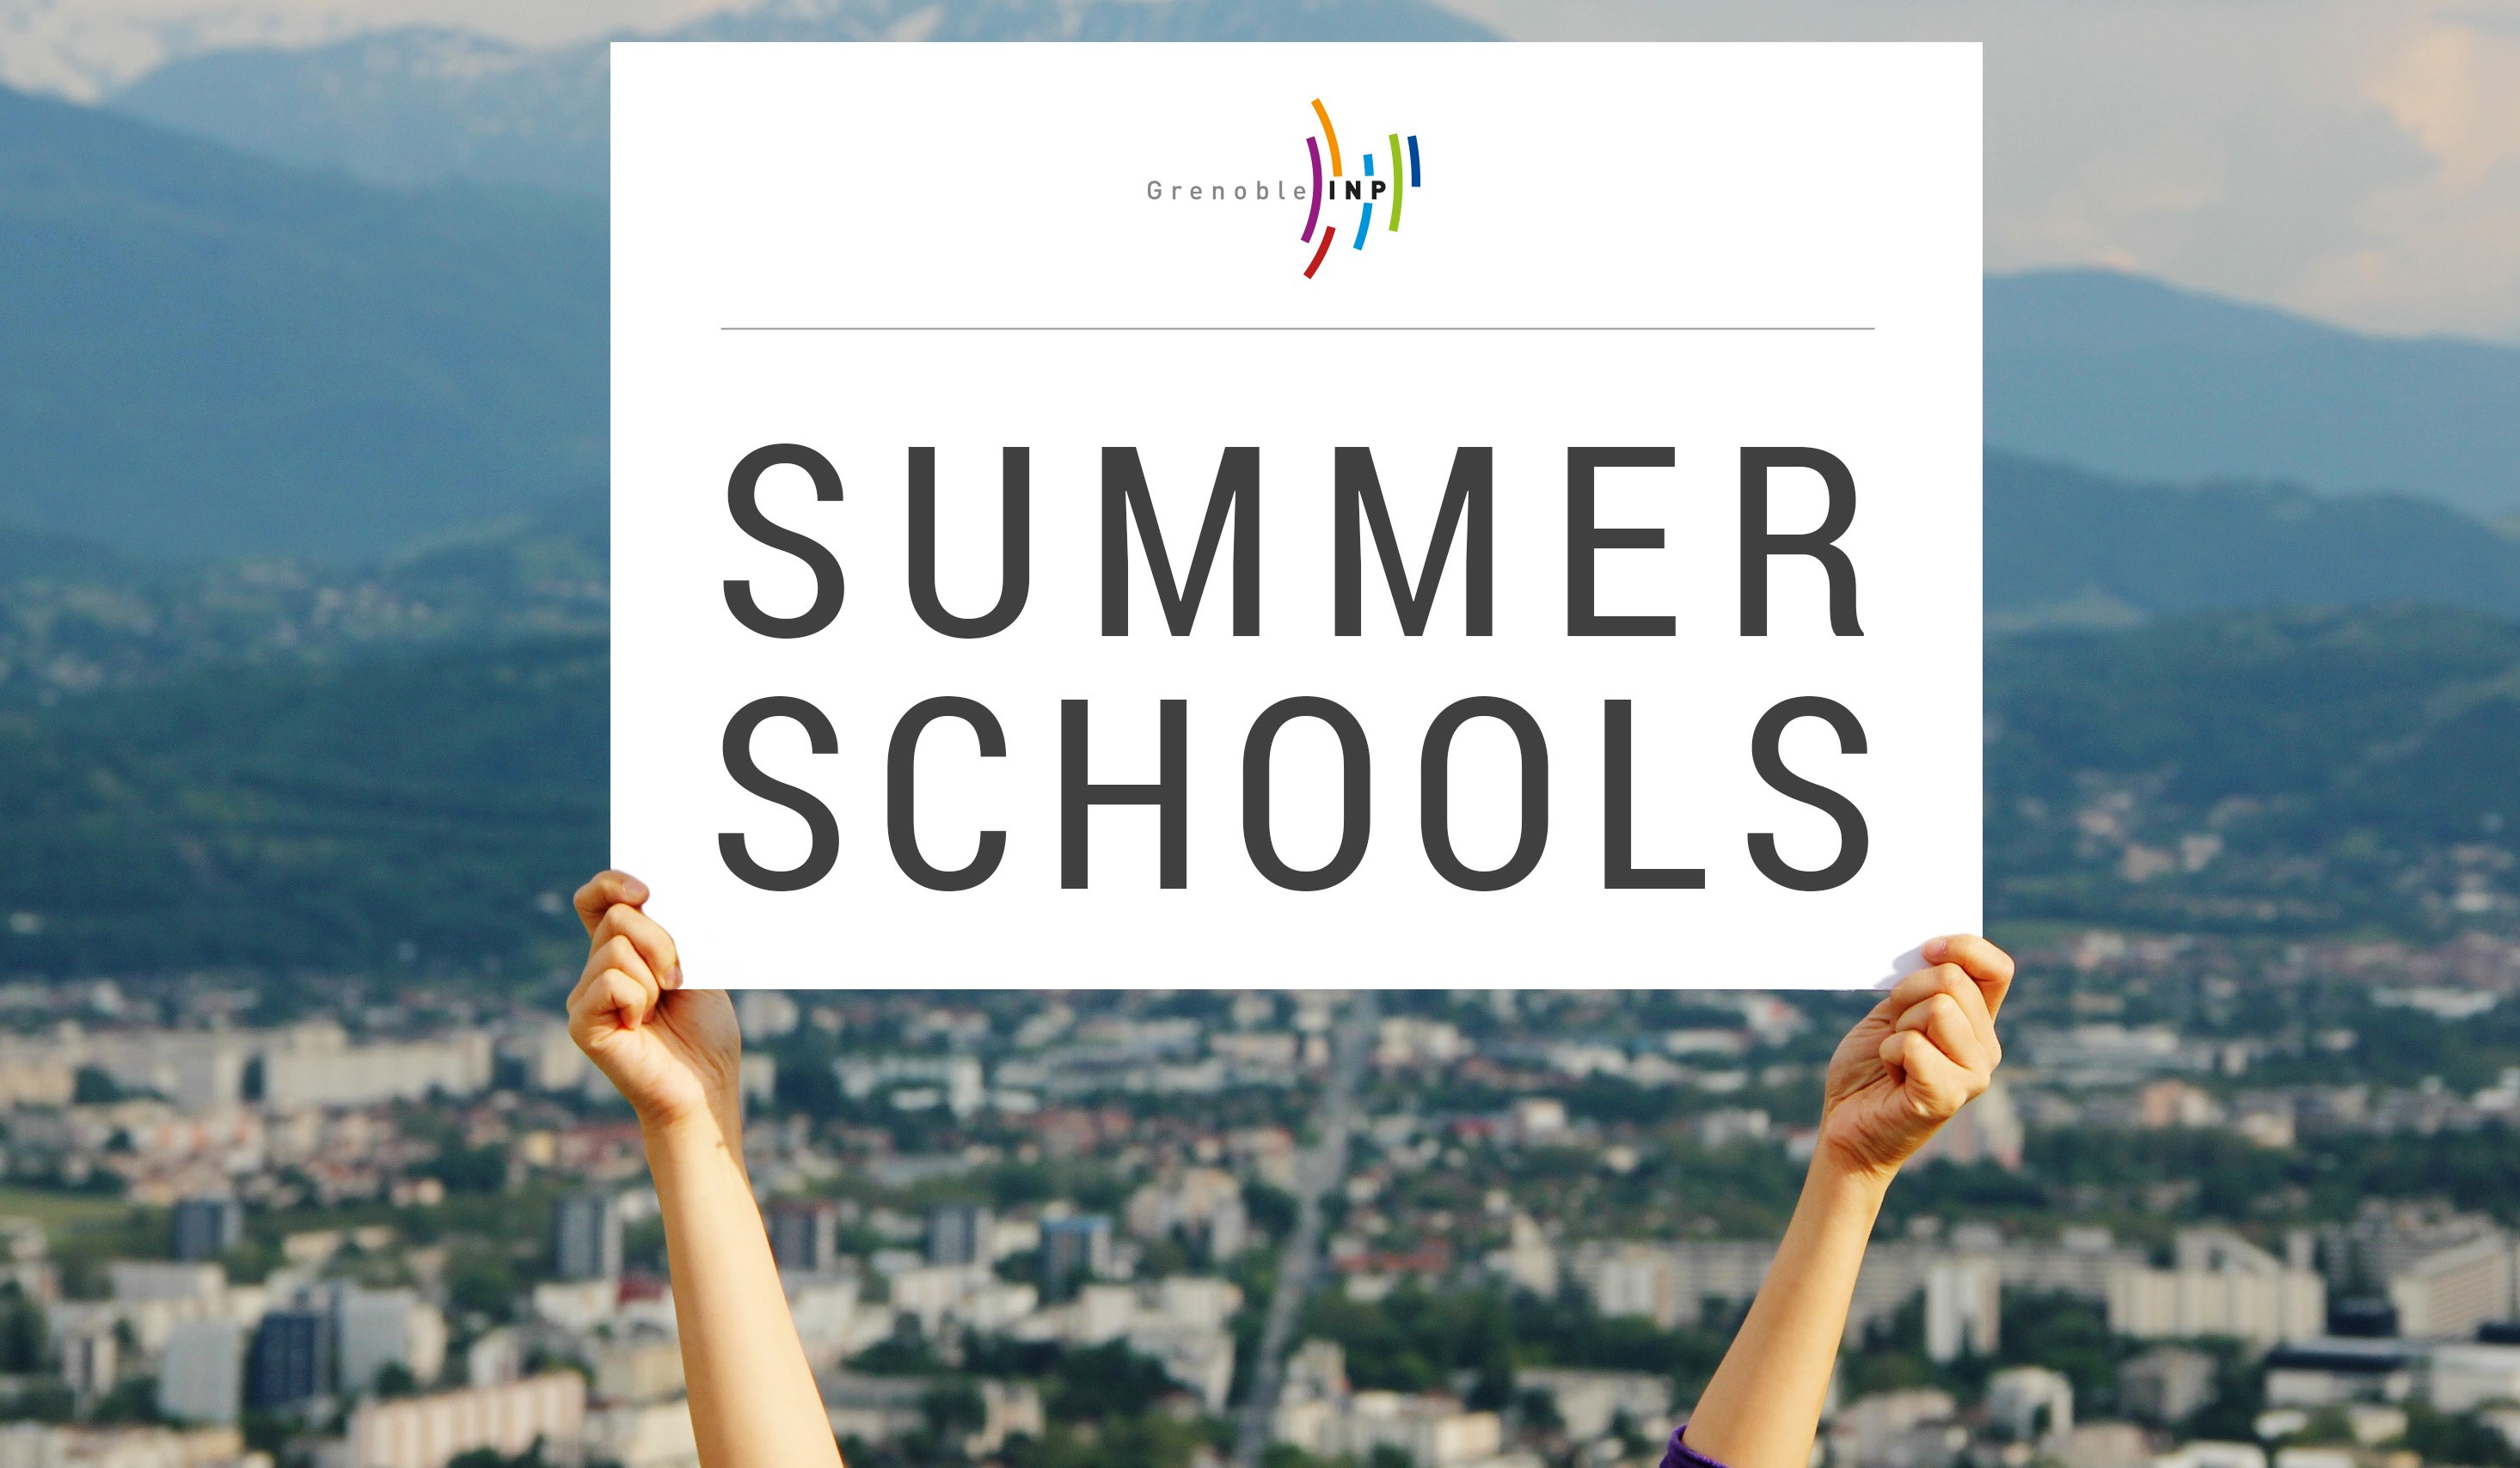 Summer school - 2018 - Copie.jpg